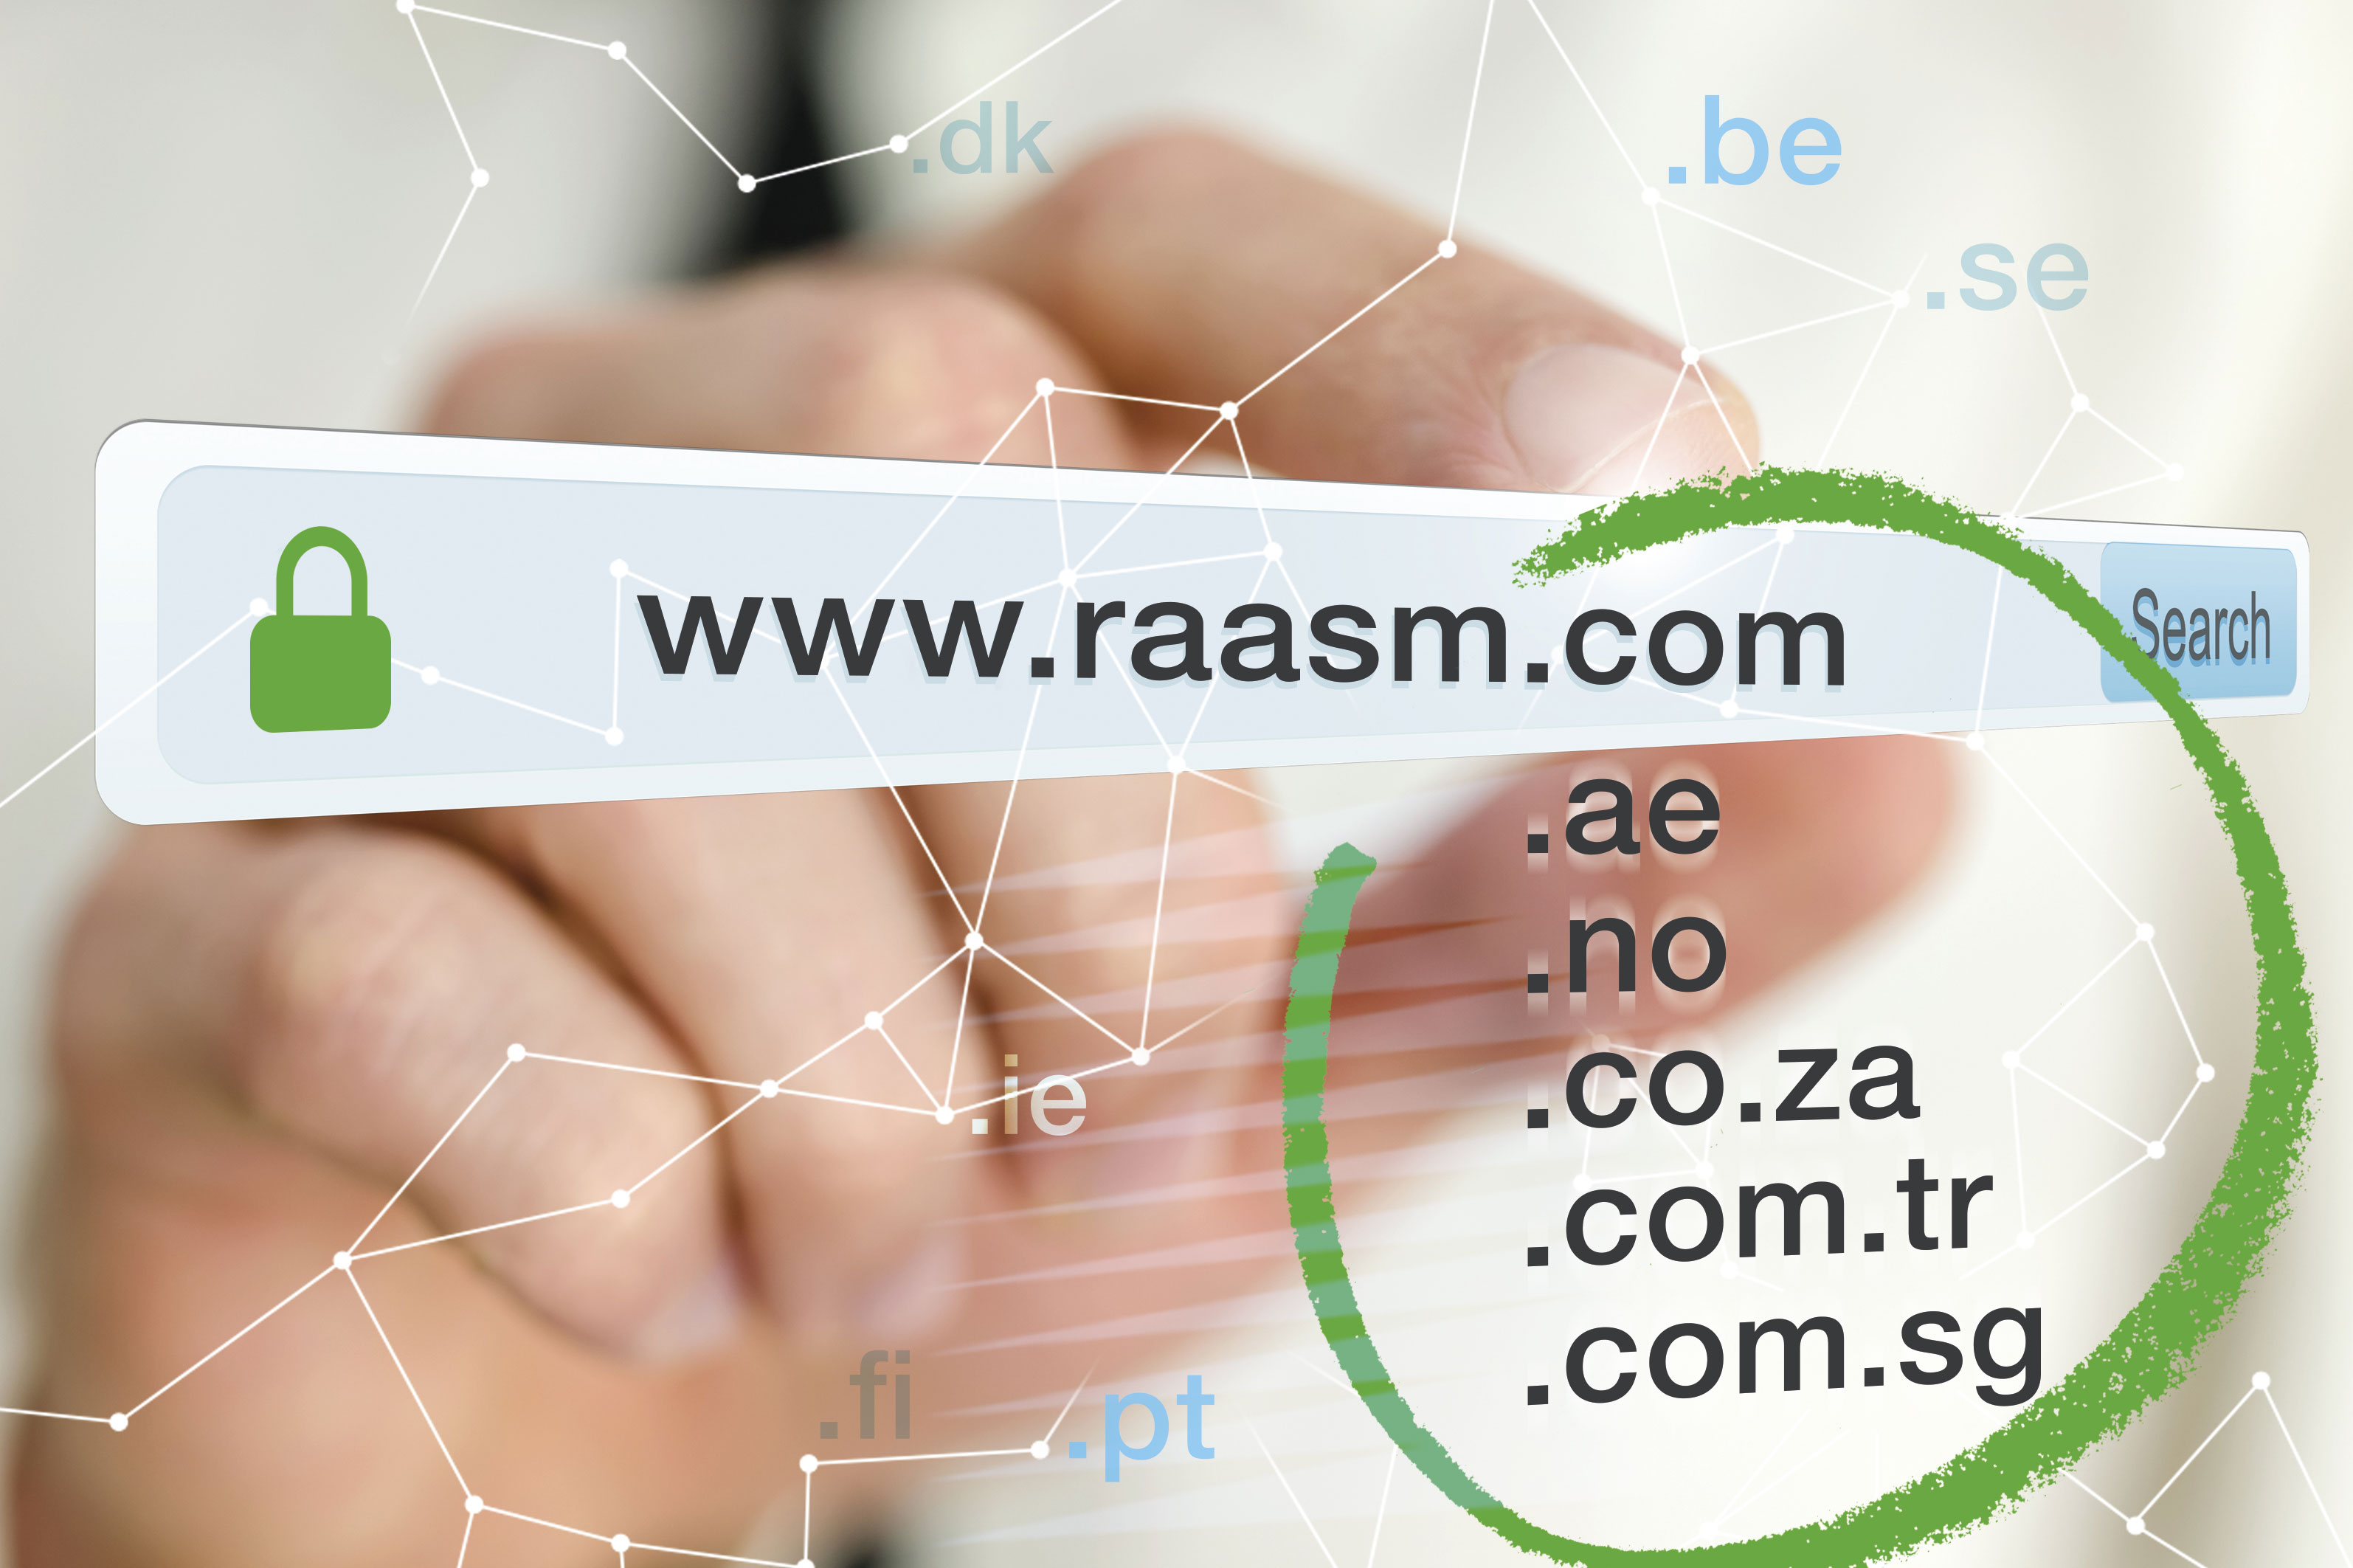 NEW DOMAINS FOR THE RAASM INTERNET SITE